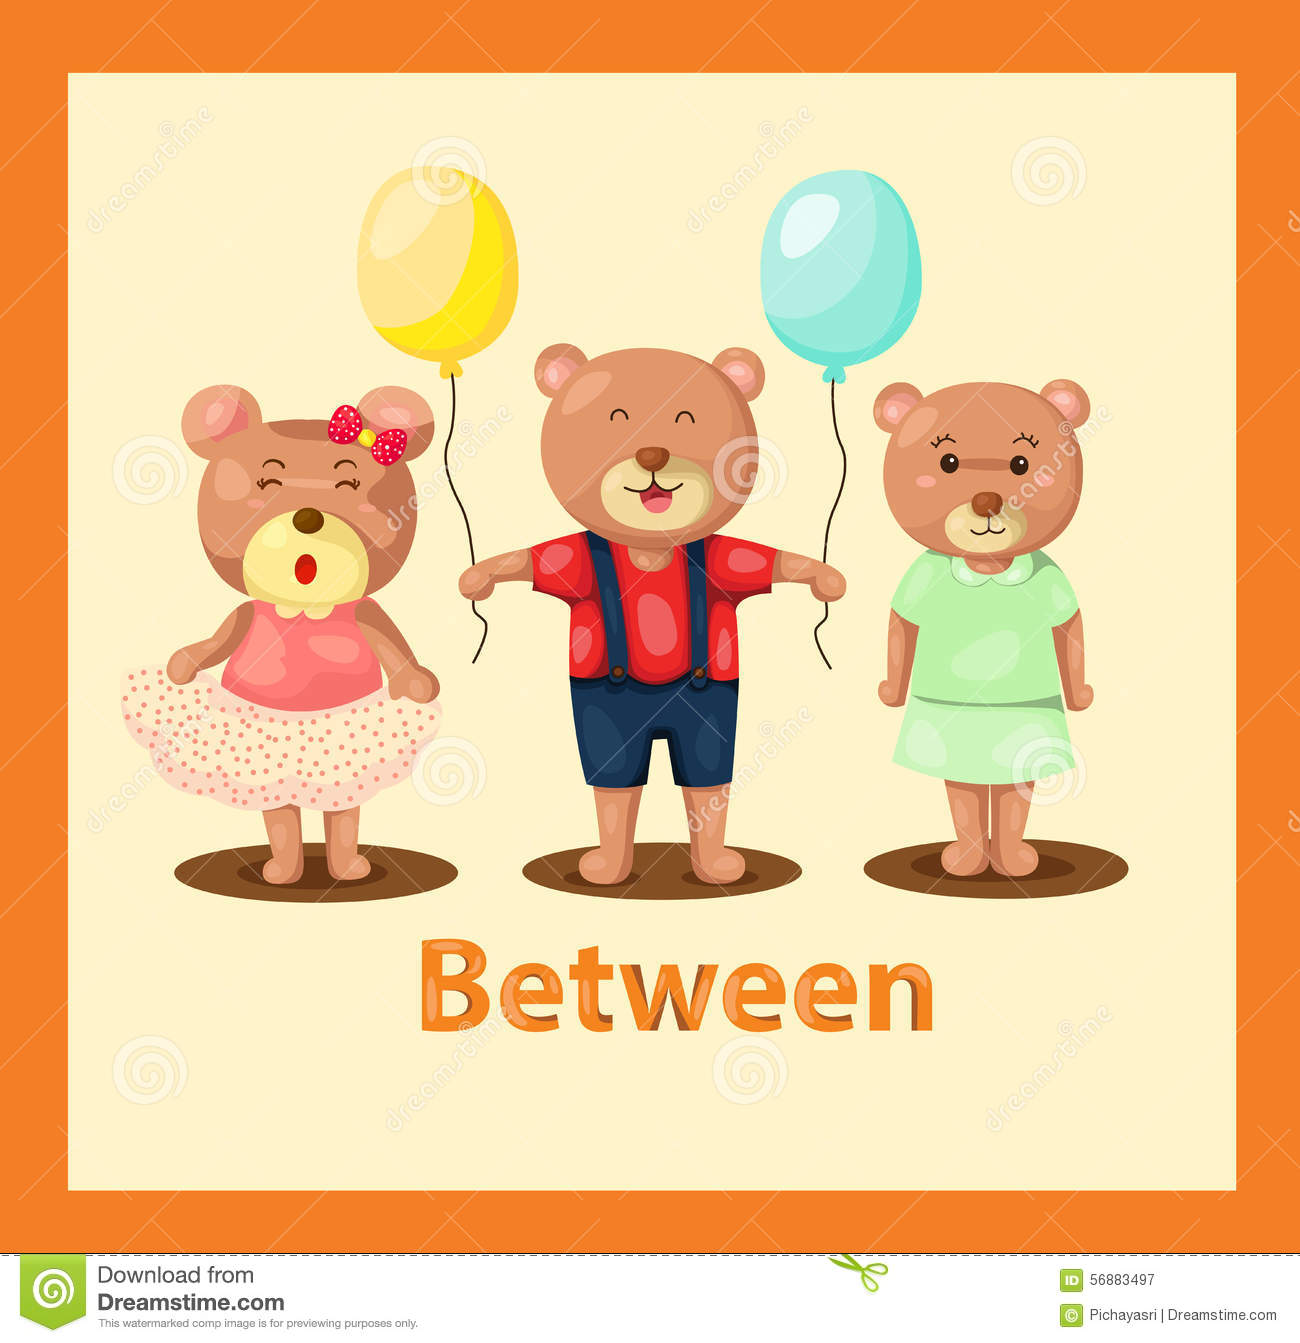 Stock Illustration Cartoon Bears Vocabulary Illustration Image56883497 on Cute Preschool Clip Art